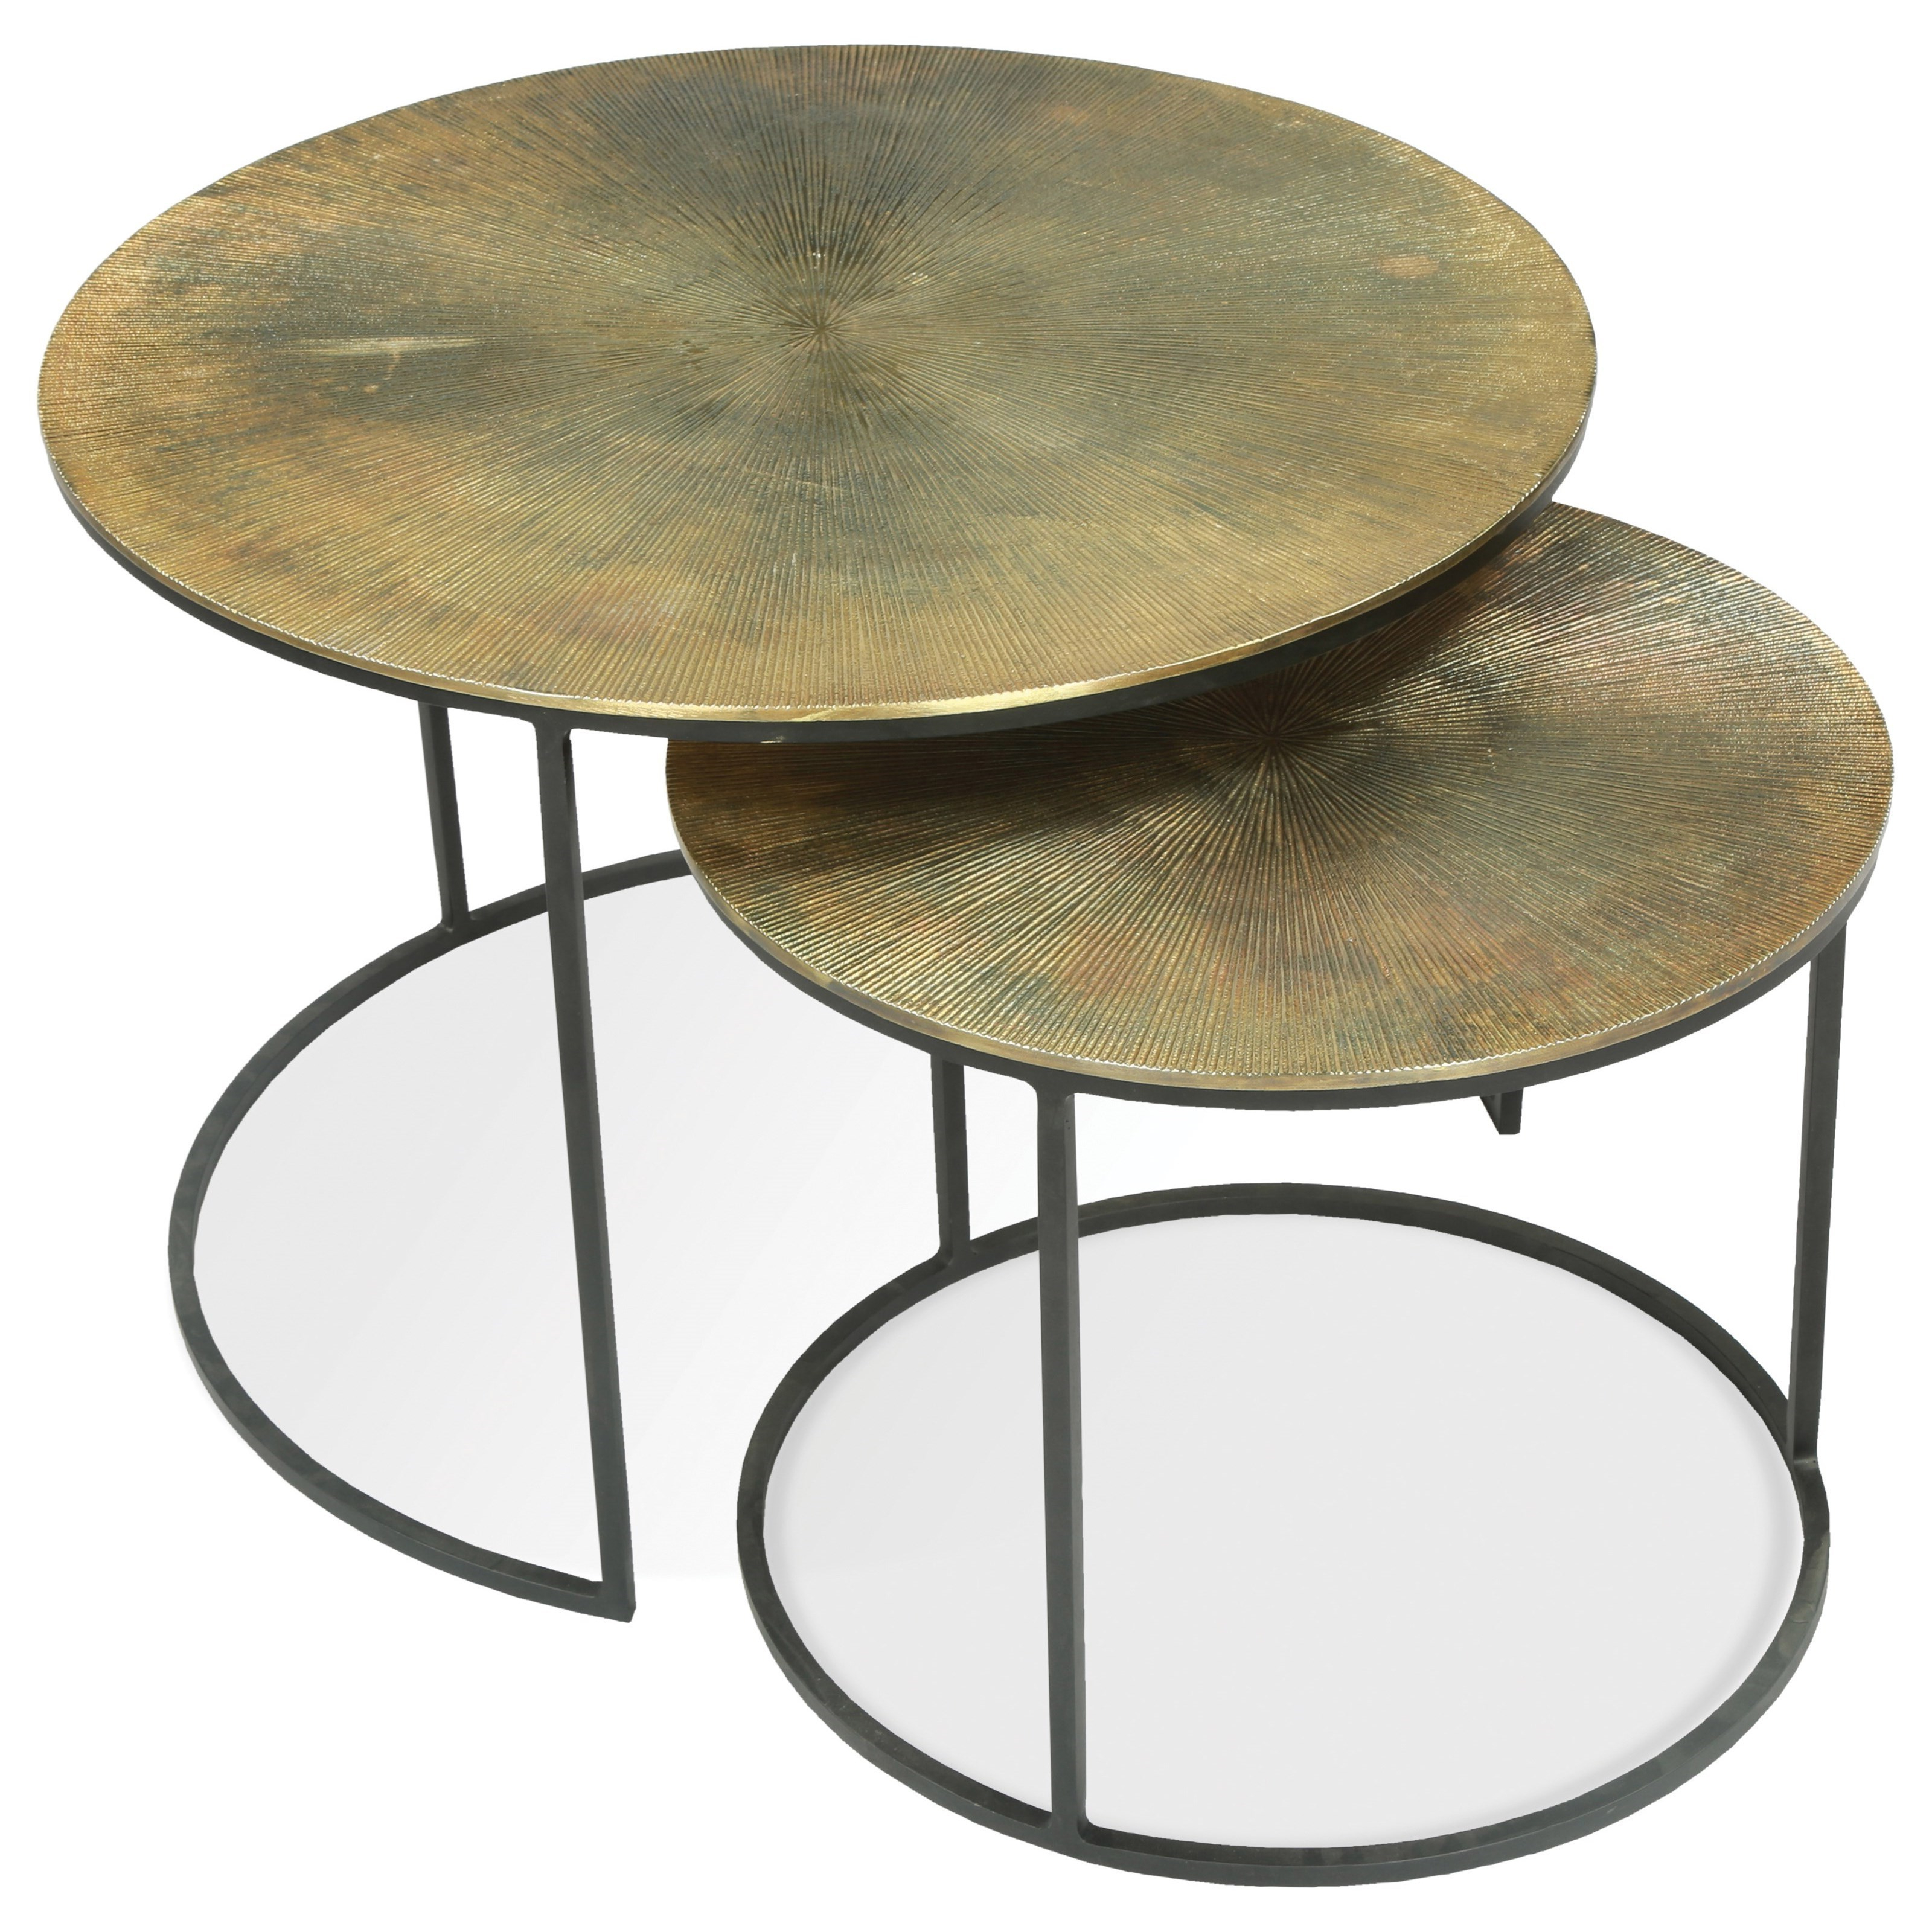 Most Recent Silver Orchid Grant Glam Nesting Cocktail Tables Inside Riverside Furniture Portia 53209 Nesting Coffee Tables With (View 19 of 20)